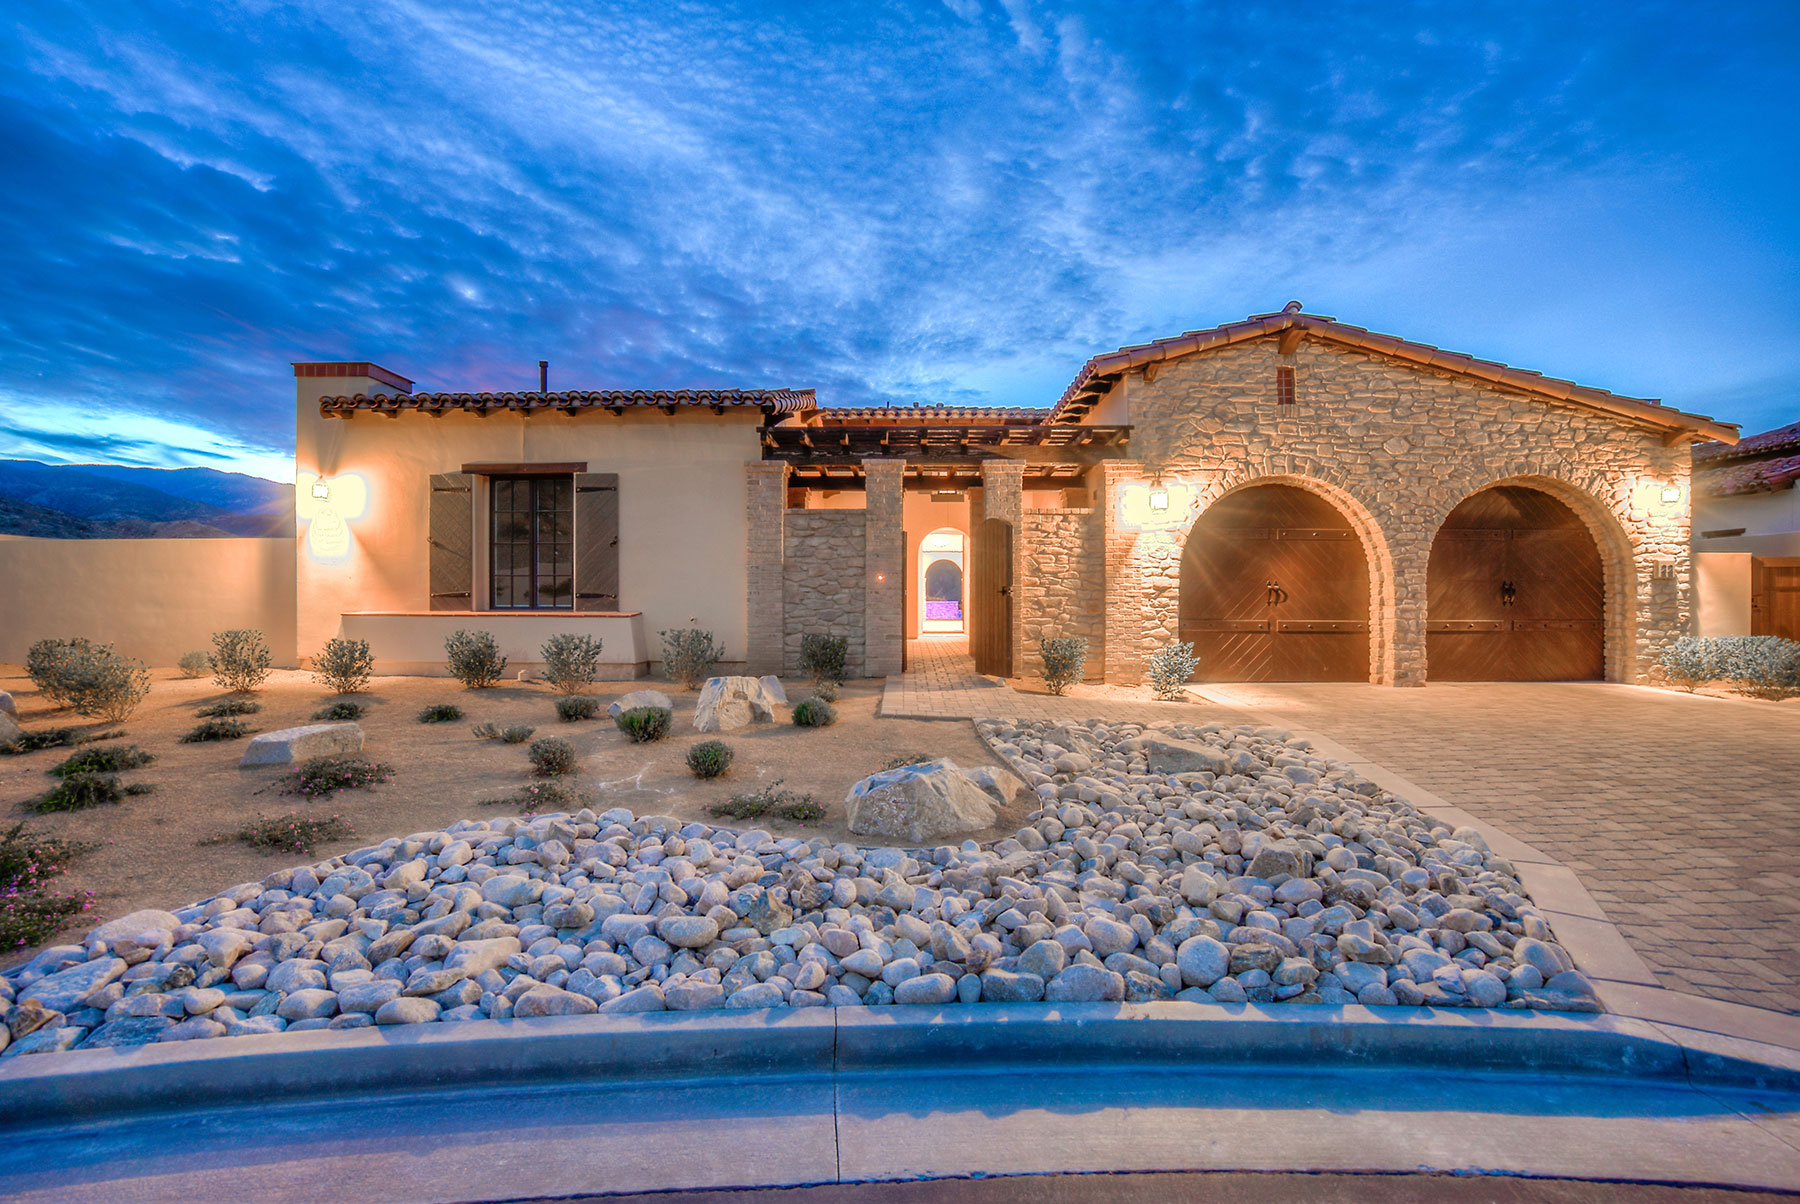 Single Family Home for Sale at 22 Mount San Jacinto Rancho Mirage, California, 92270 United States